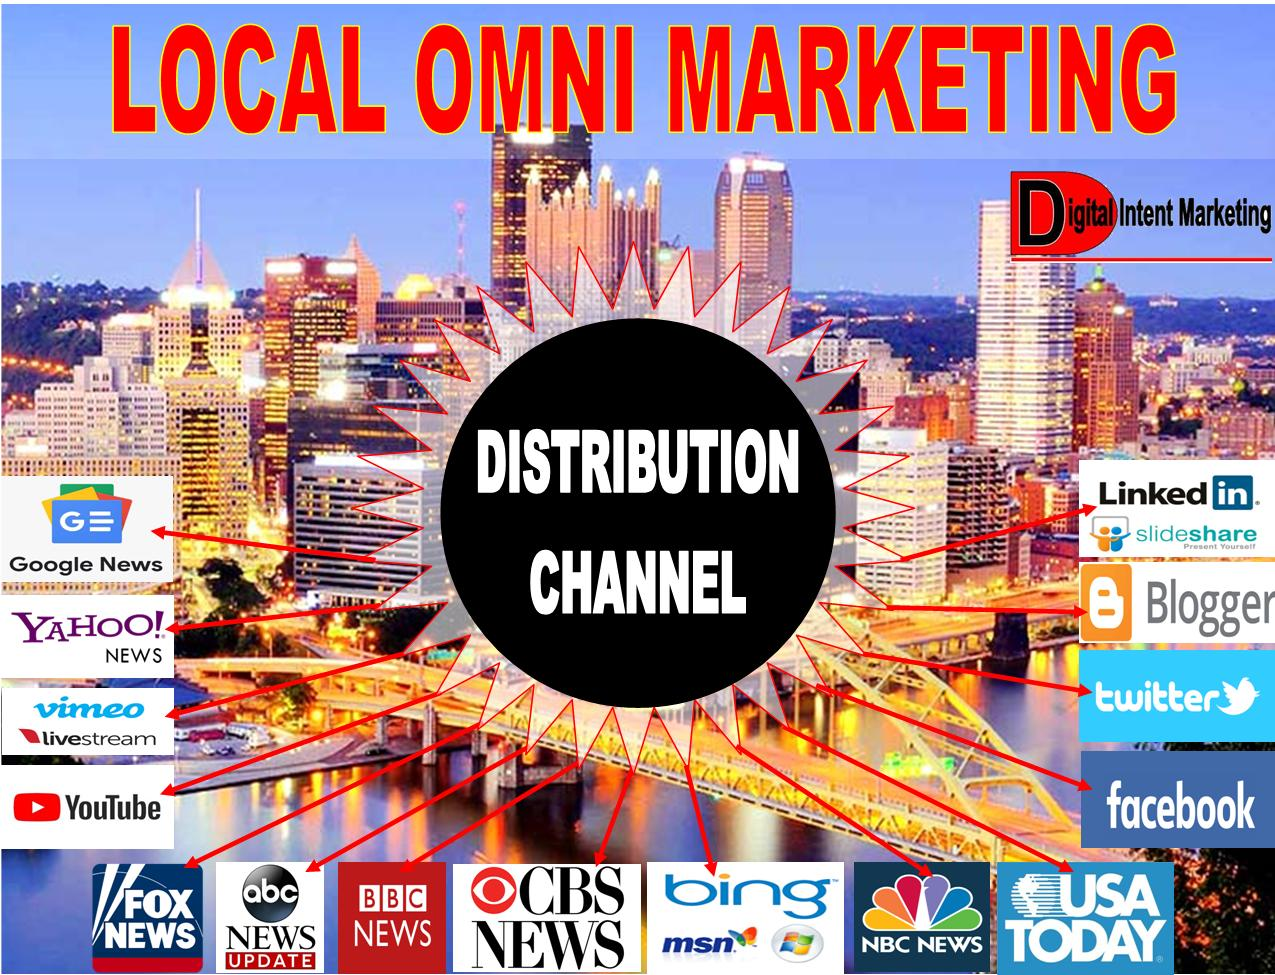 Local Omni Marketing Distribution Channel with the City Of Pittsburgh background and Omnipresence Marketing Networks